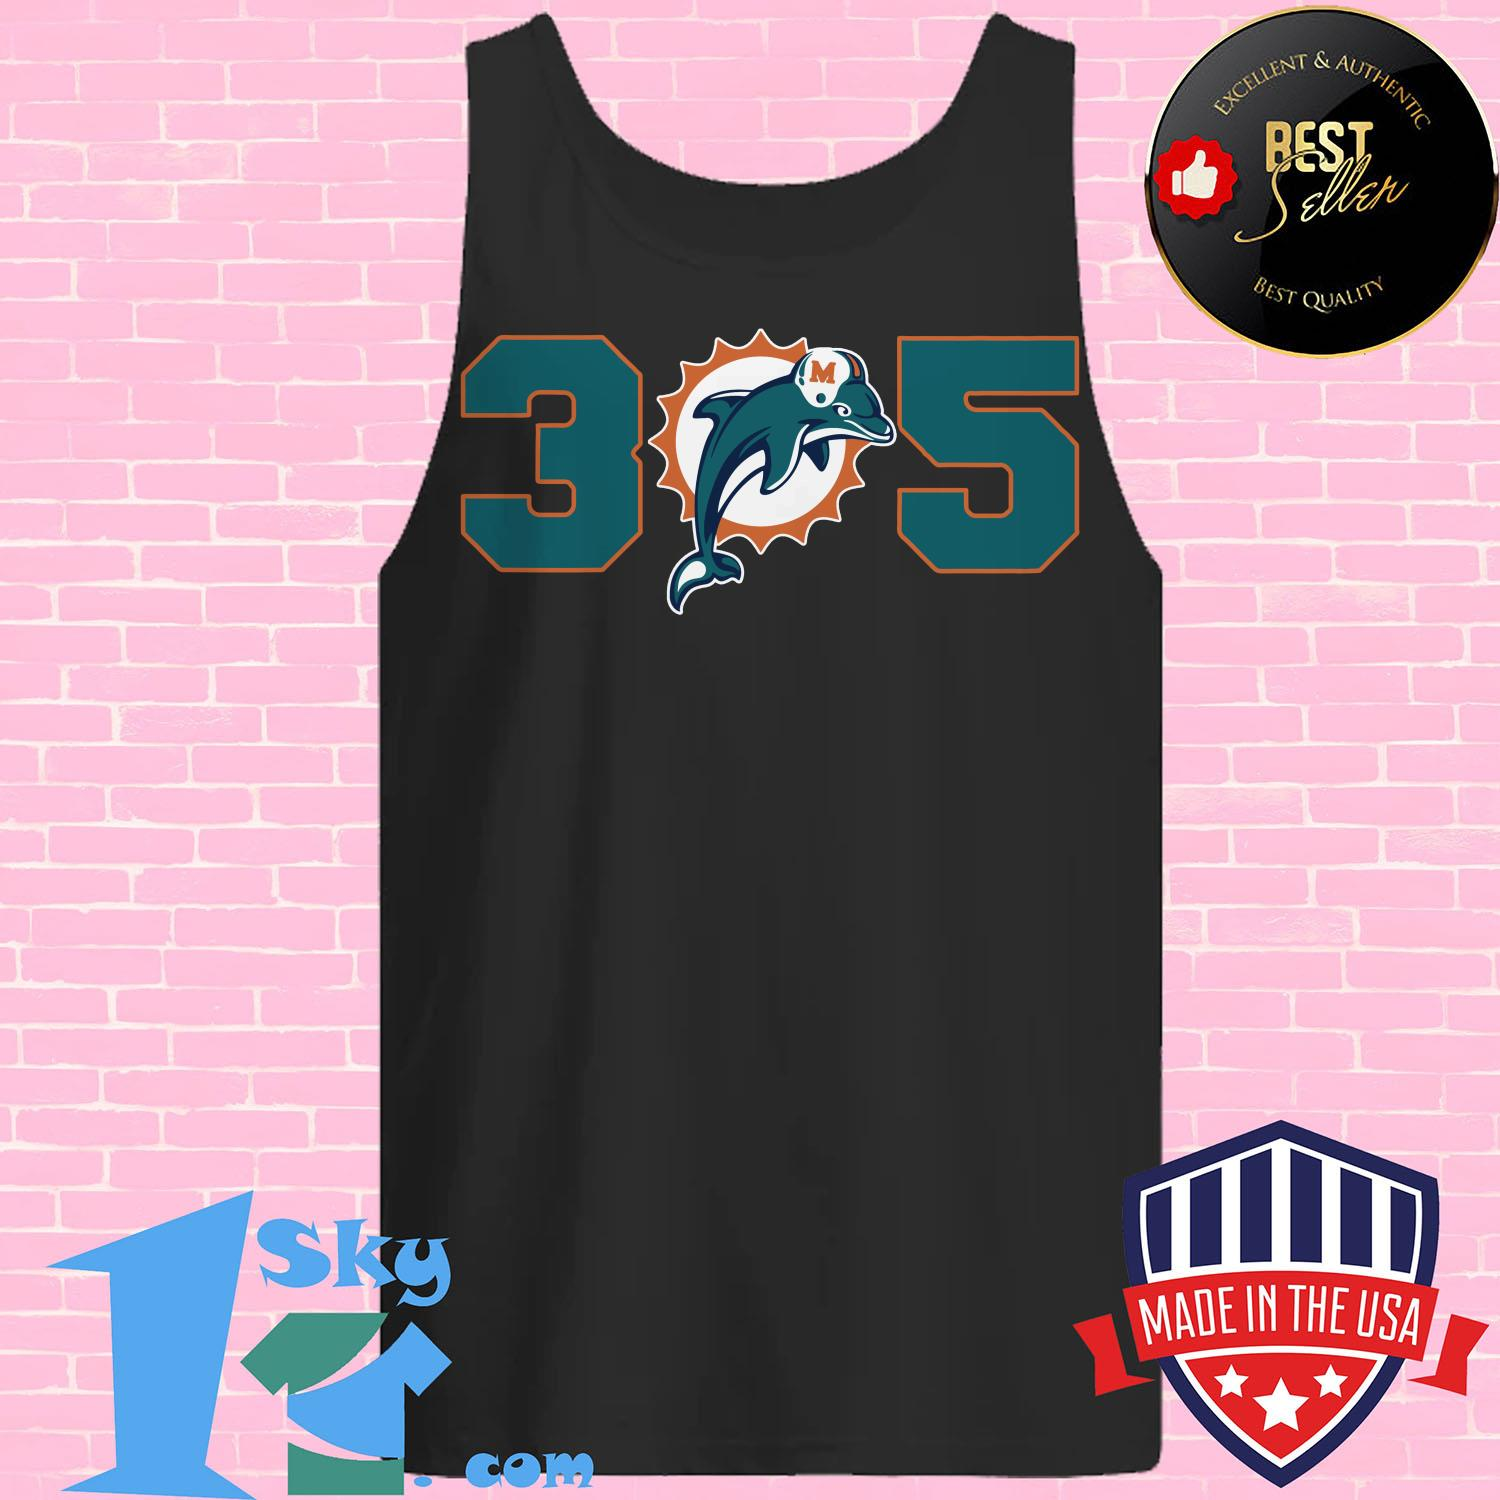 official 305 miami dolphins tank top - Official 305 Miami Dolphins shirt